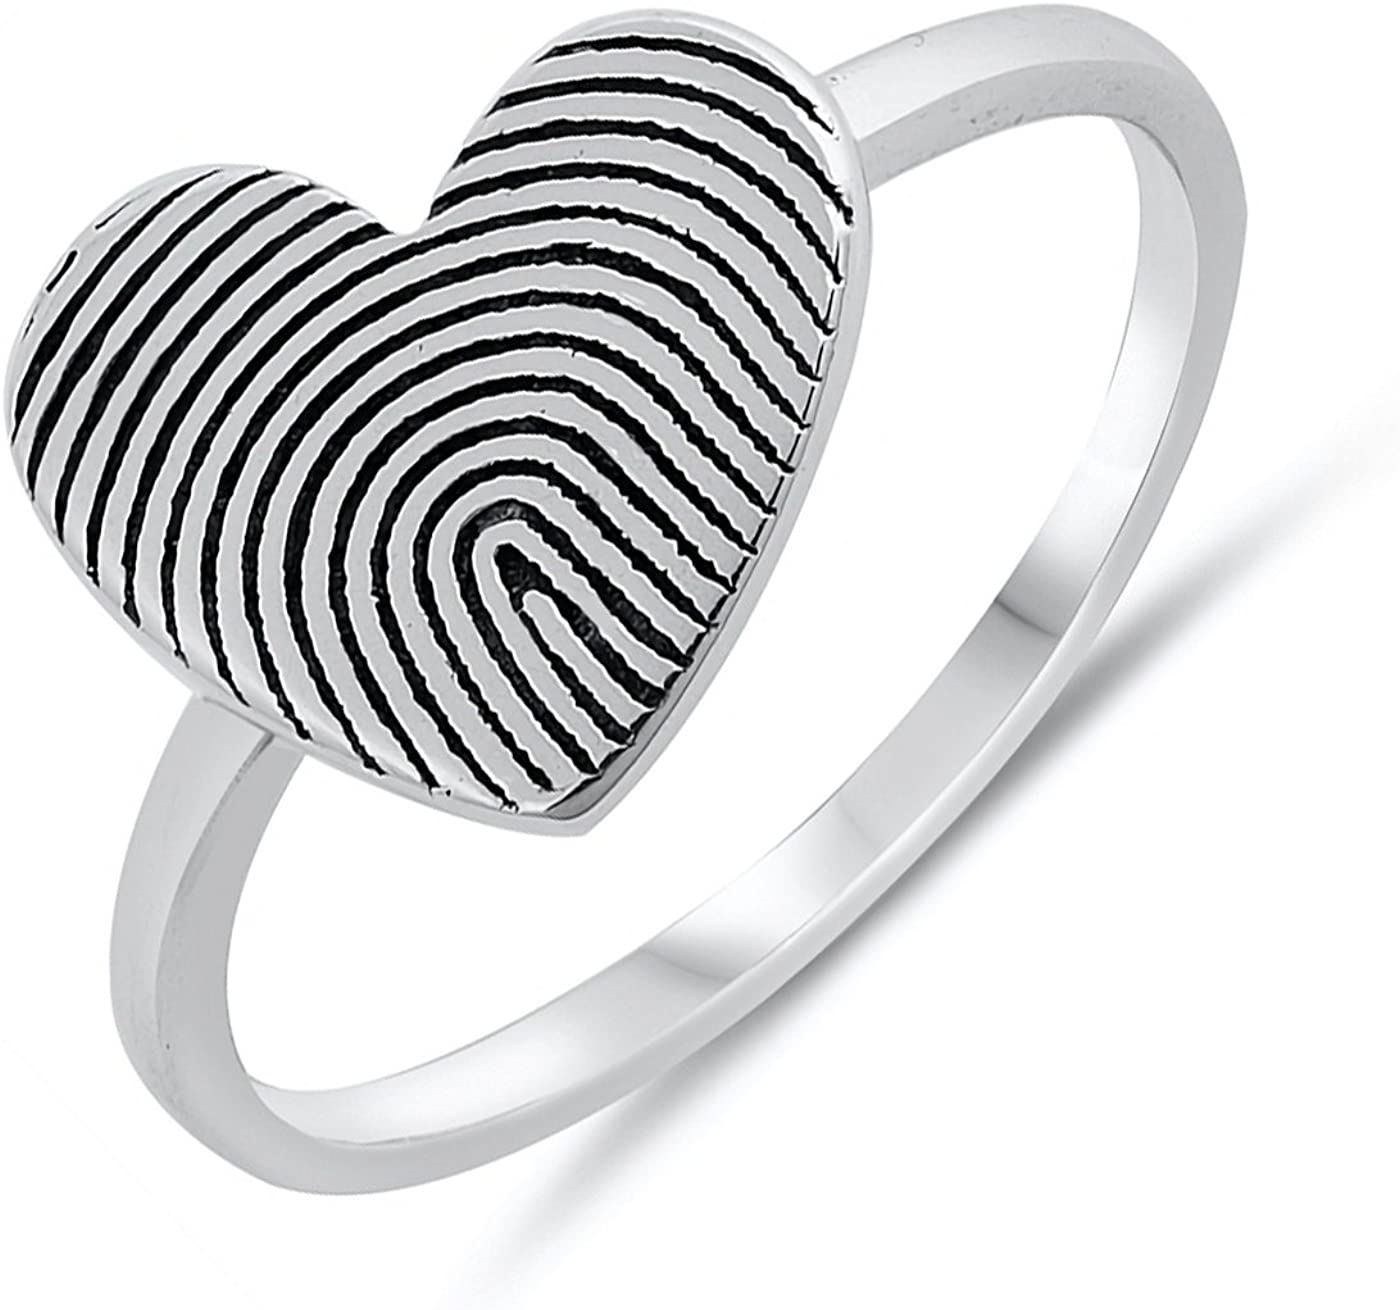 Sterling silver heart ring handmade 12mm band ring 925